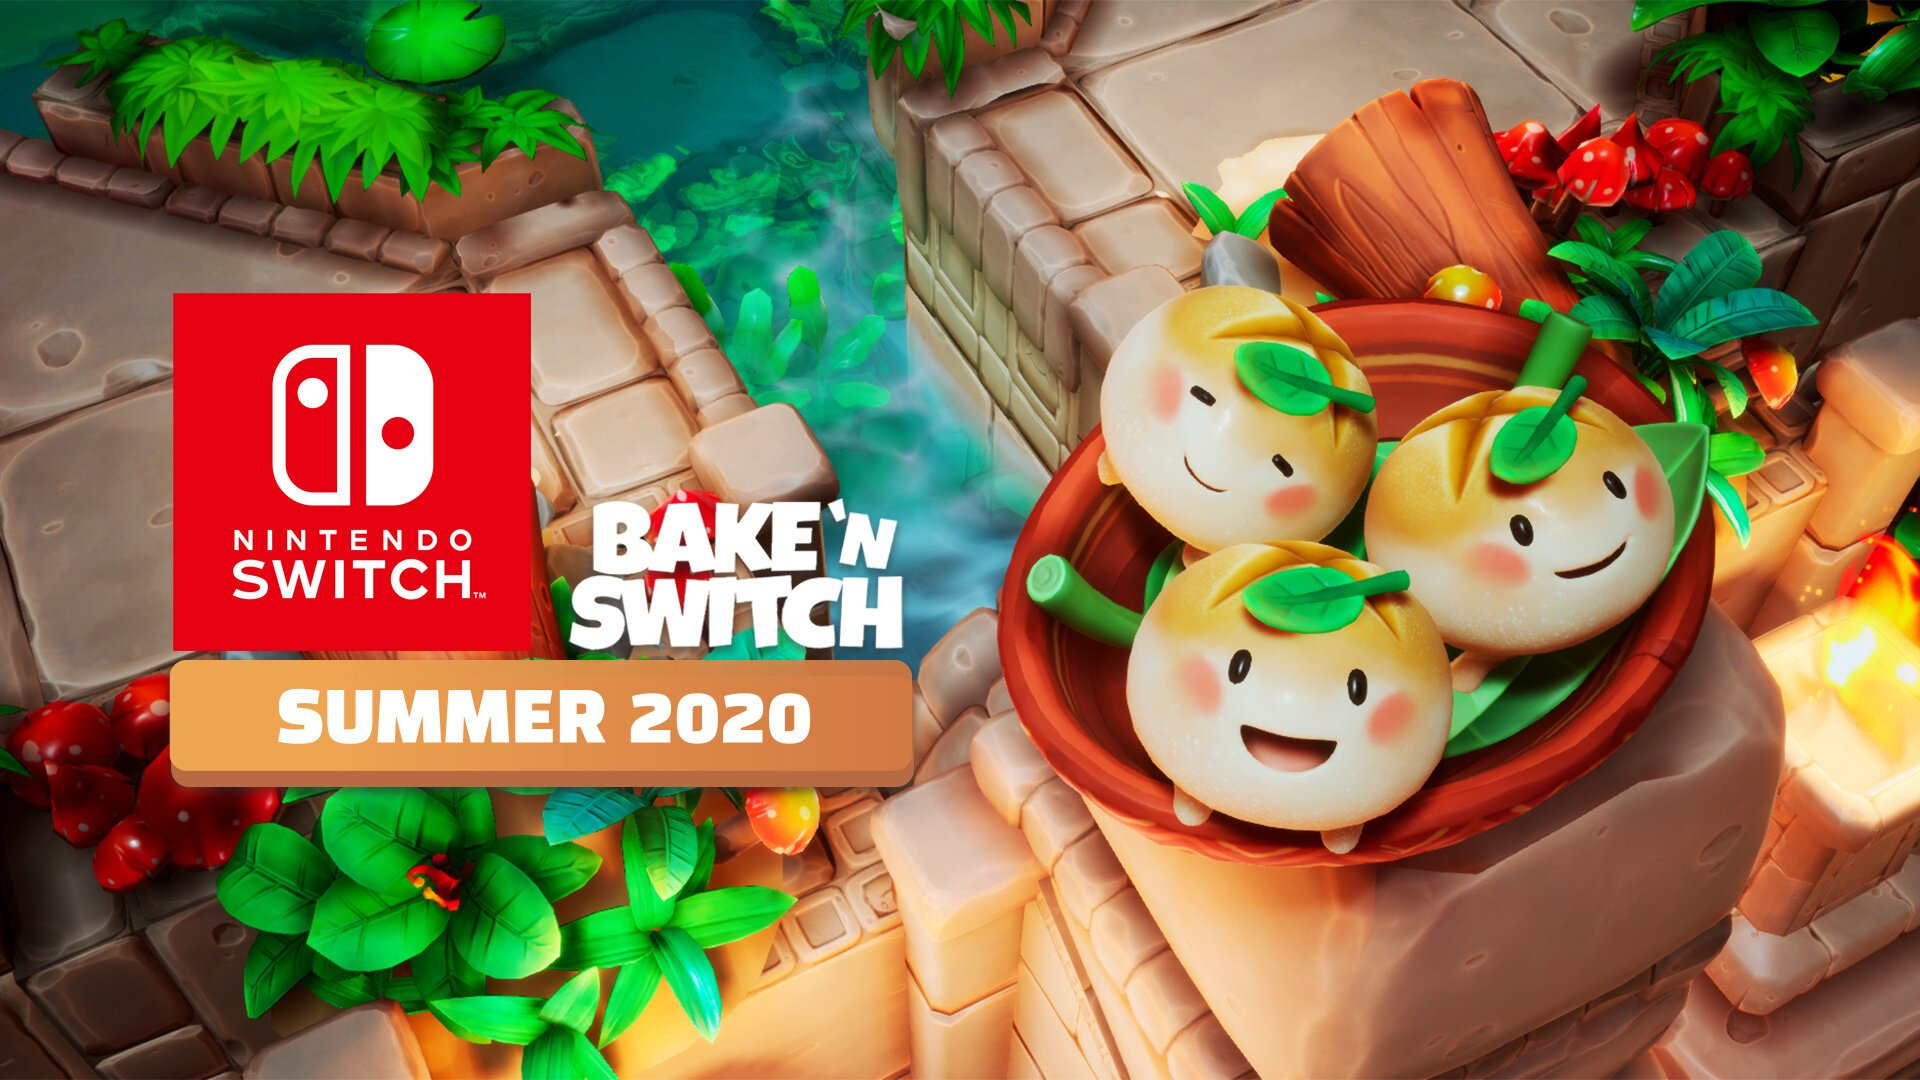 Bake 'n Switch is rising up on Nintendo Switch in Summer 2020!